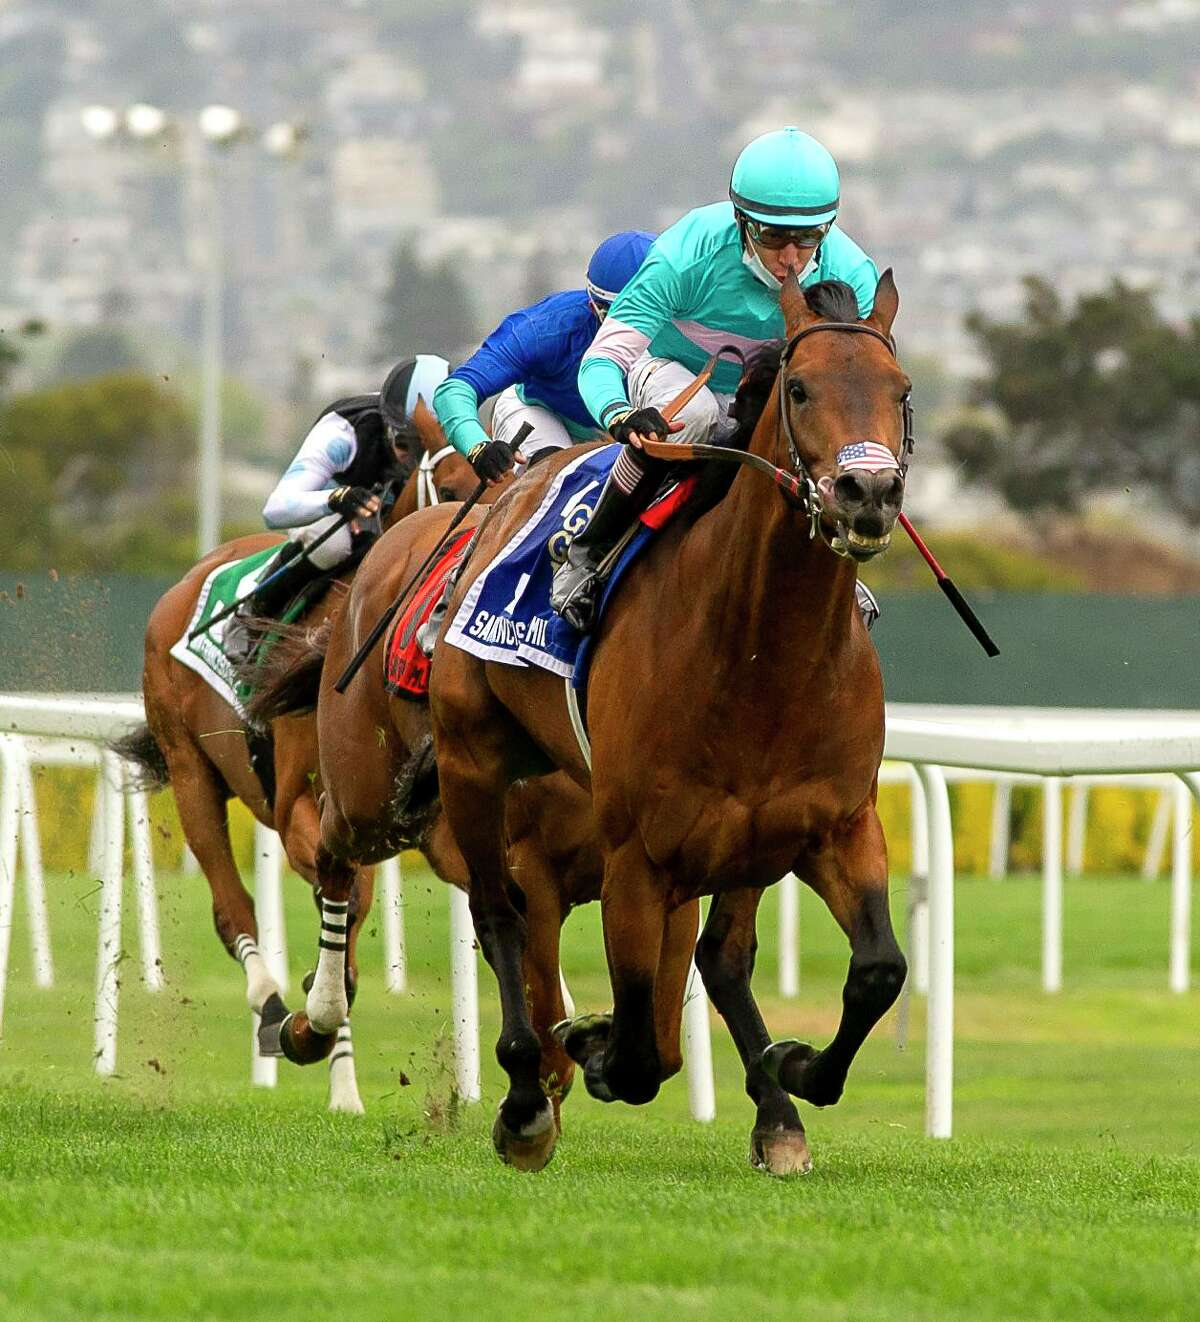 Whisper Not, with jockey Giovanni Franco aboard, races toward a victory in the San Francisco Mile at Golden Gate Fields on Saturday. He finished with a time of 1:35.94.